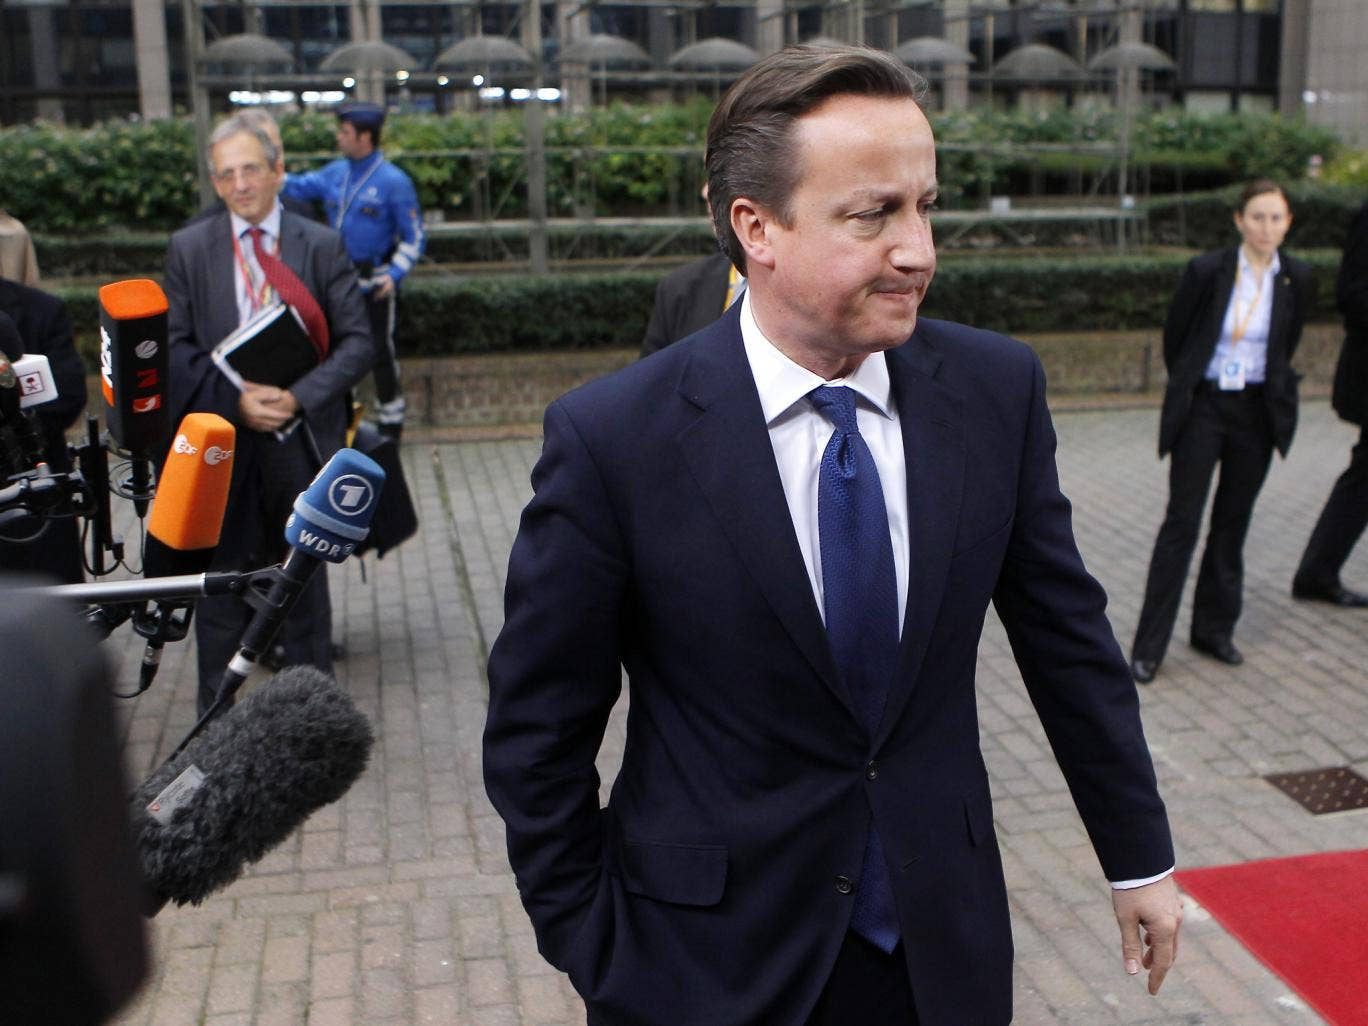 David Cameron had called for an extra €50bn of cuts in the spending programme for 2014-20